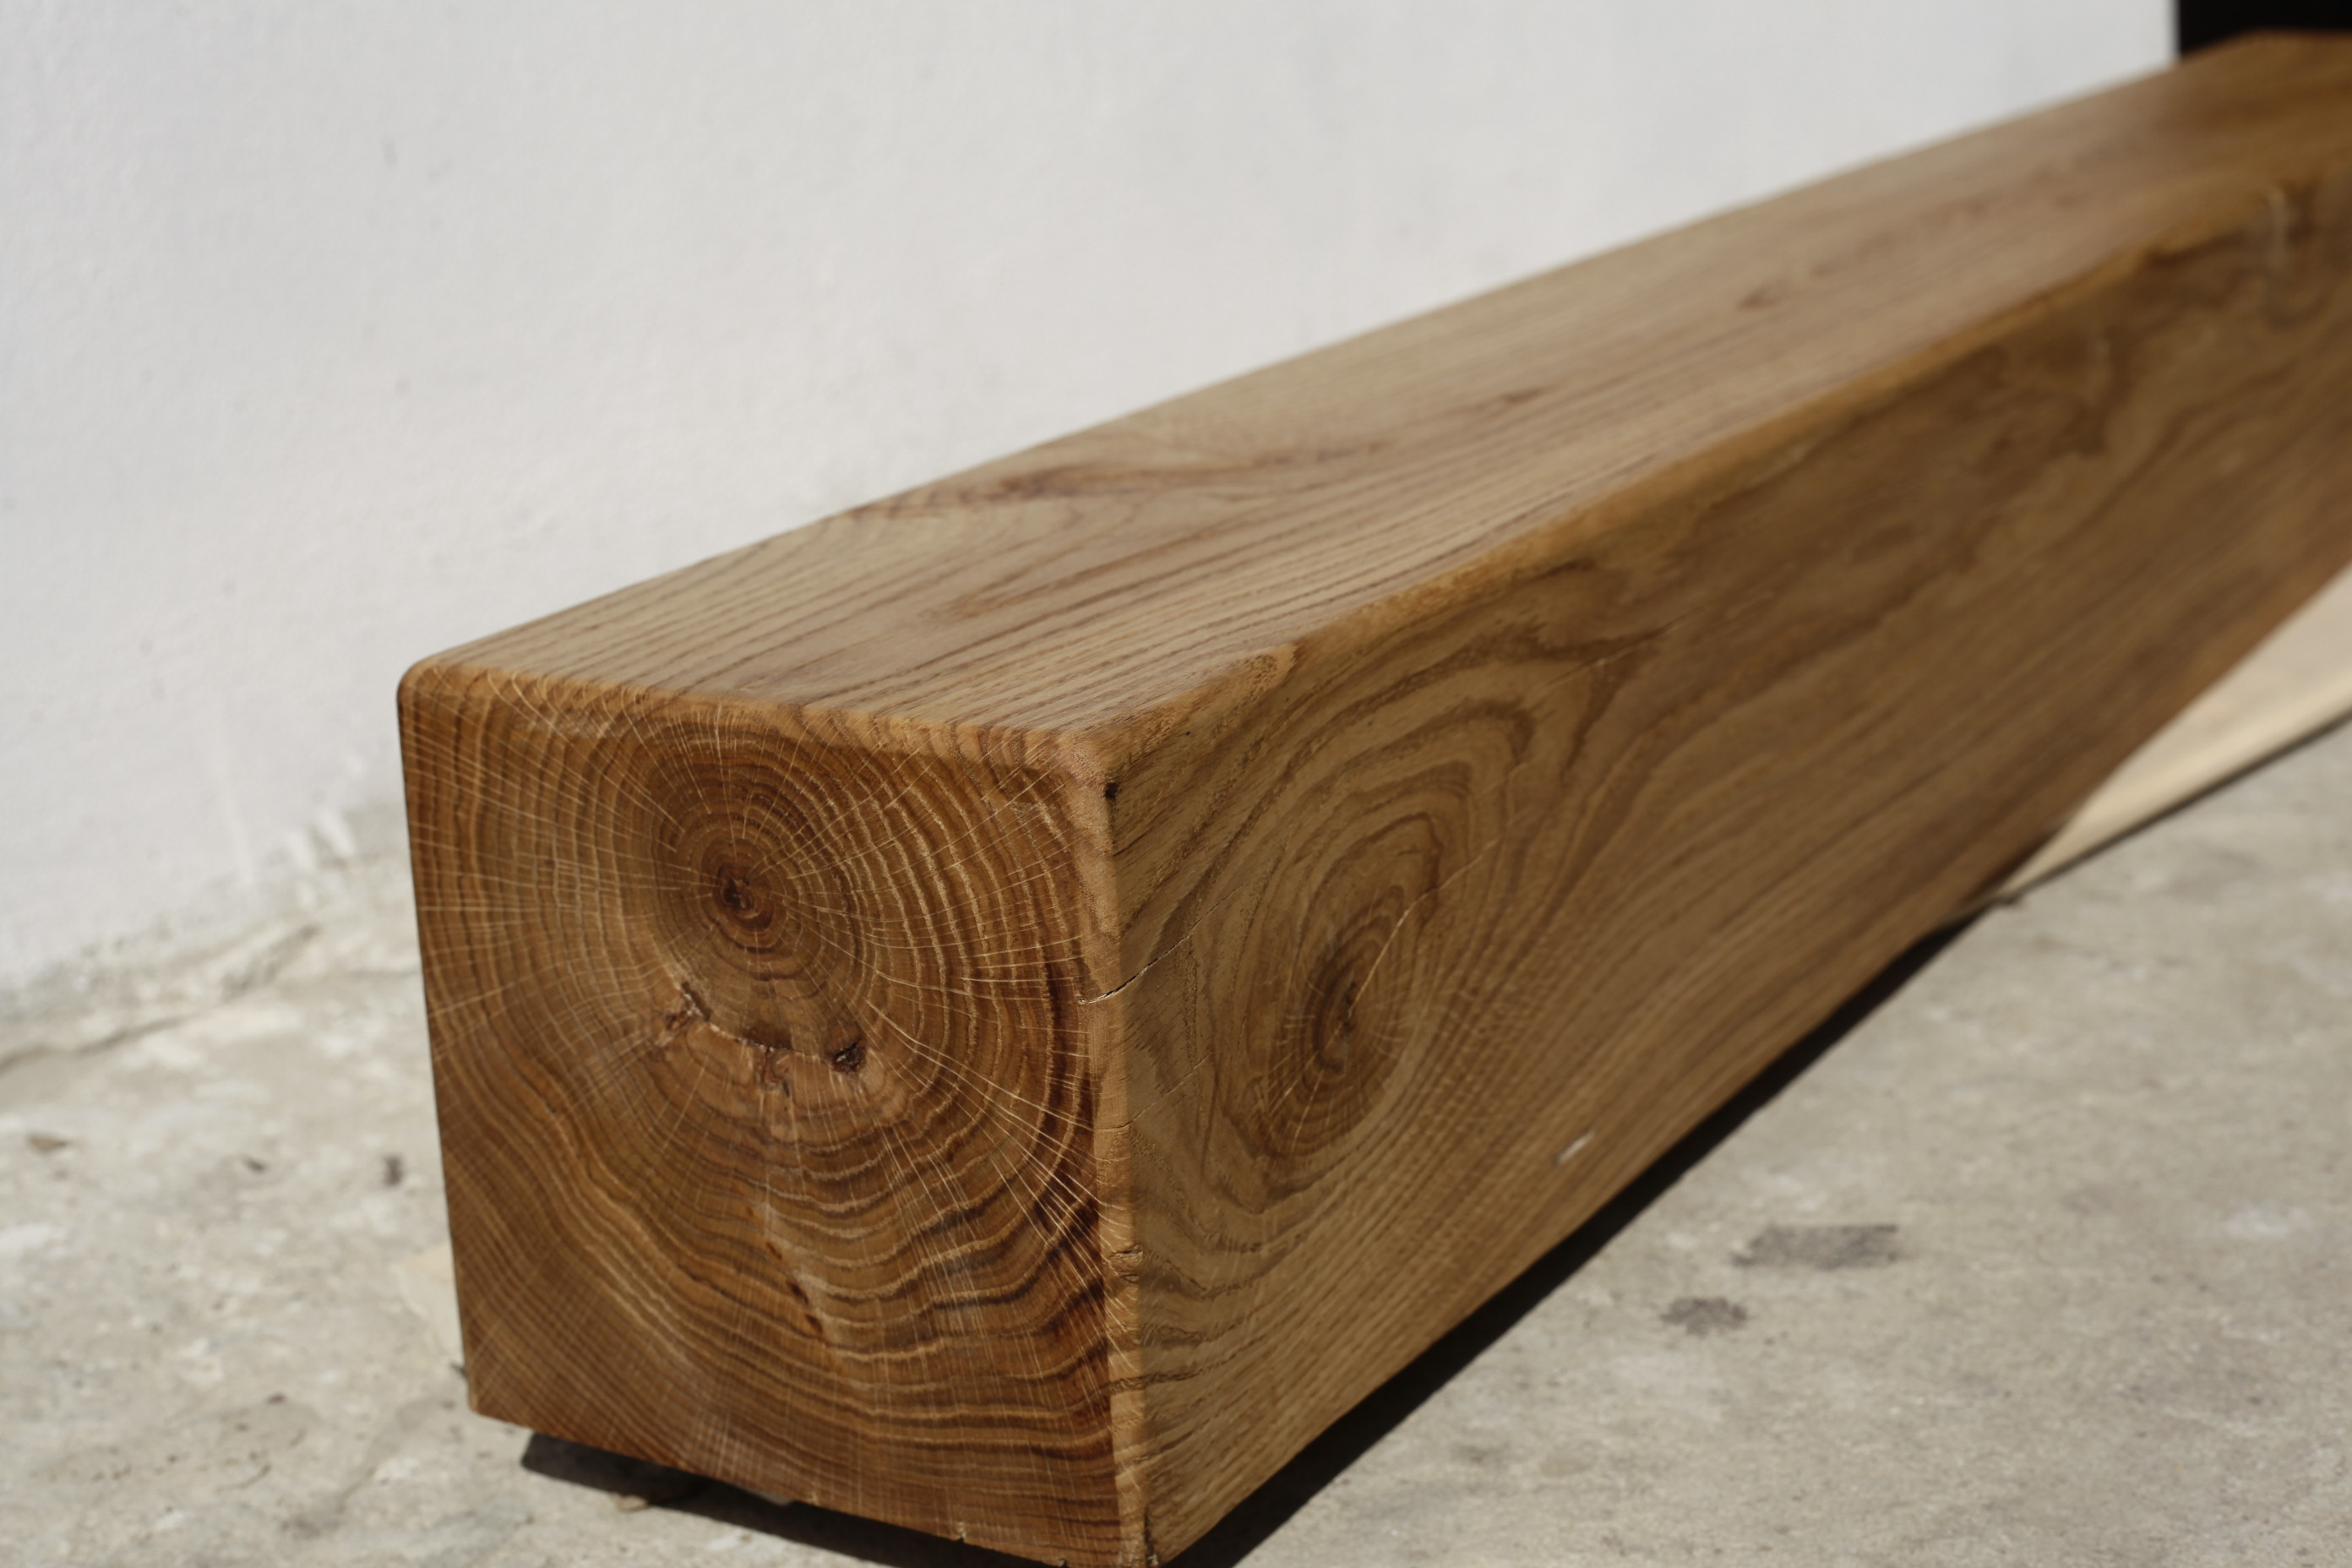 15cm wide/15cm high - mantel beam